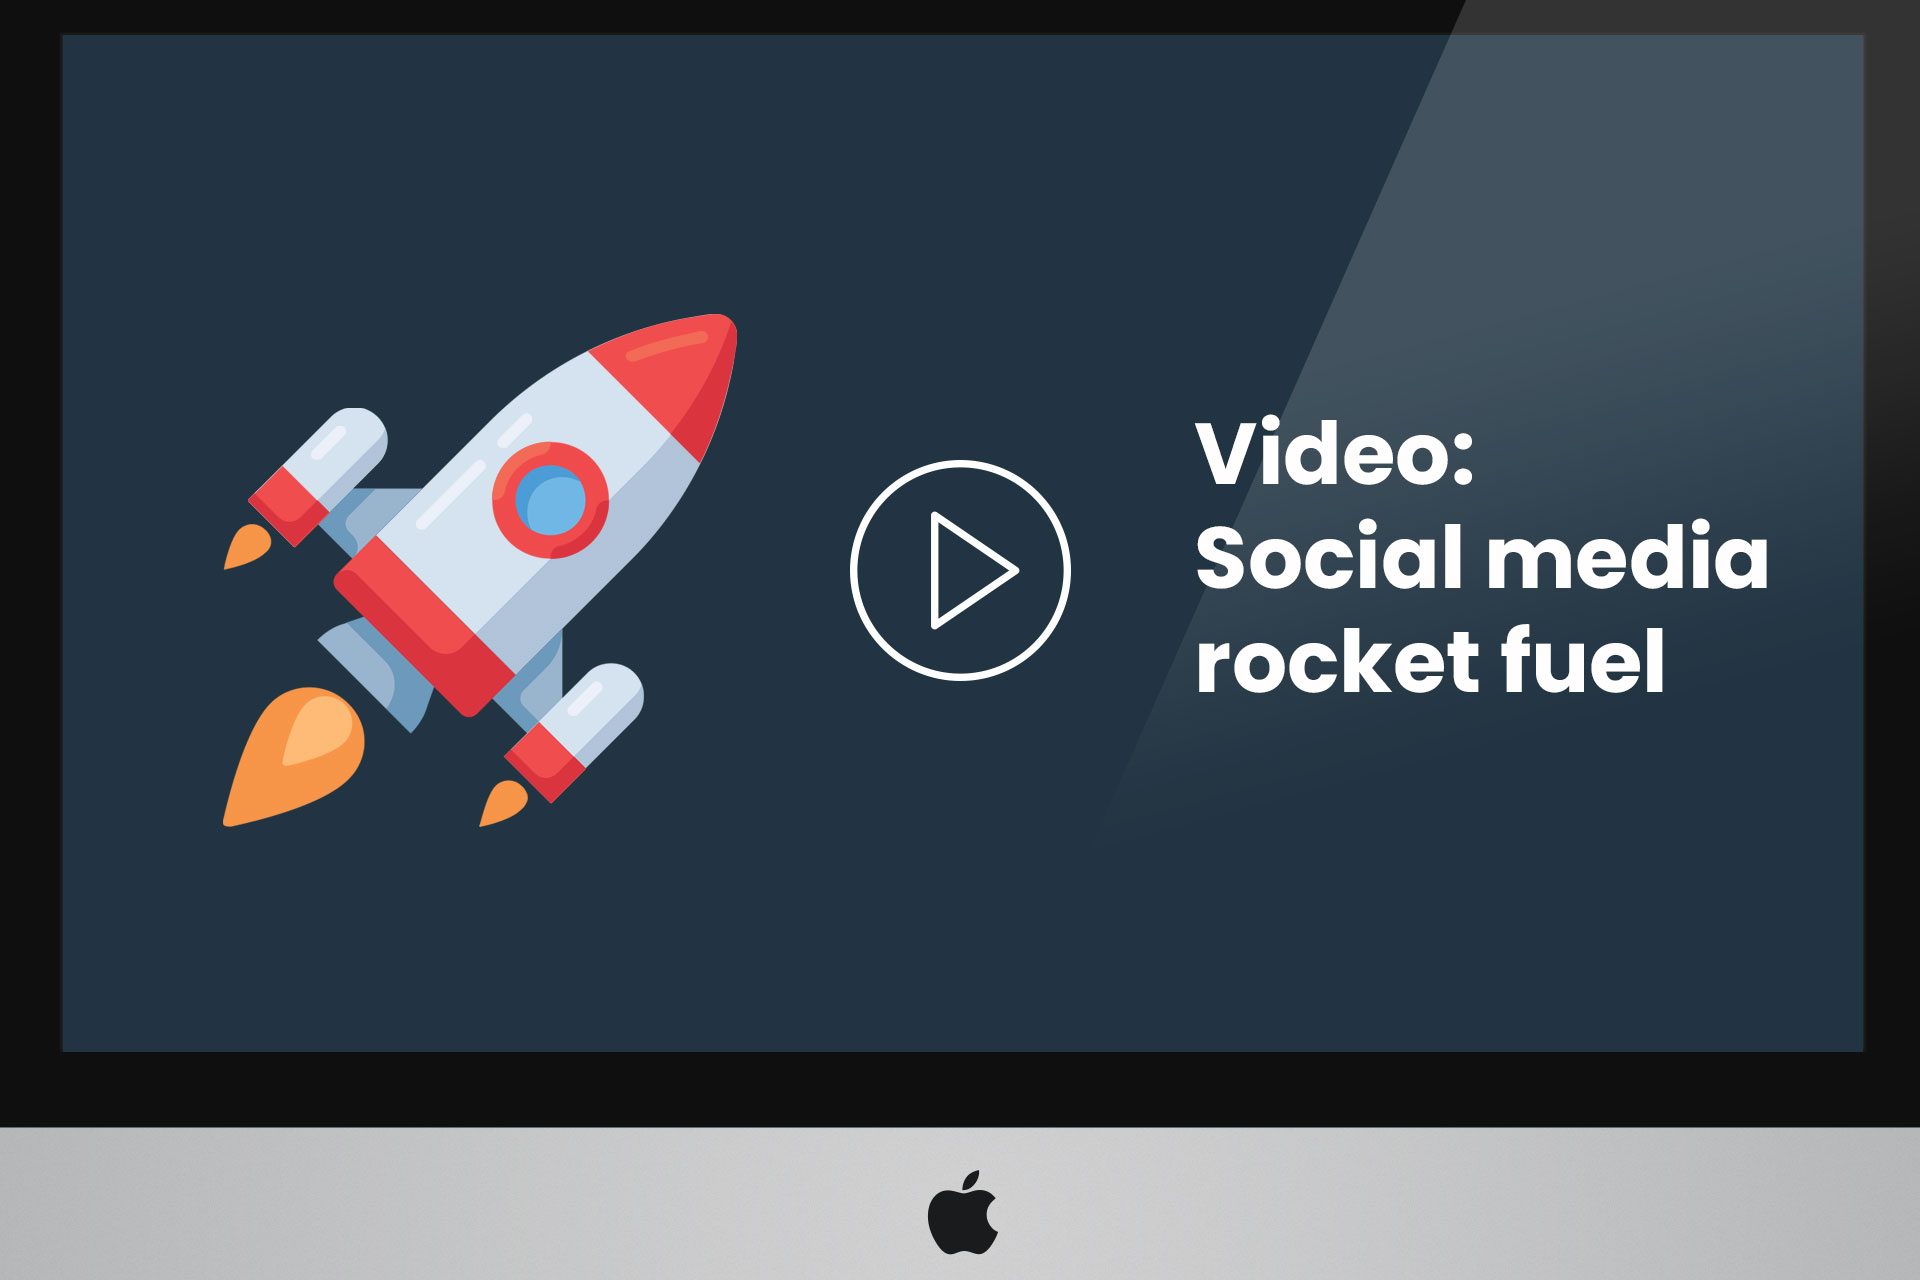 Video: Social media rocket fuel